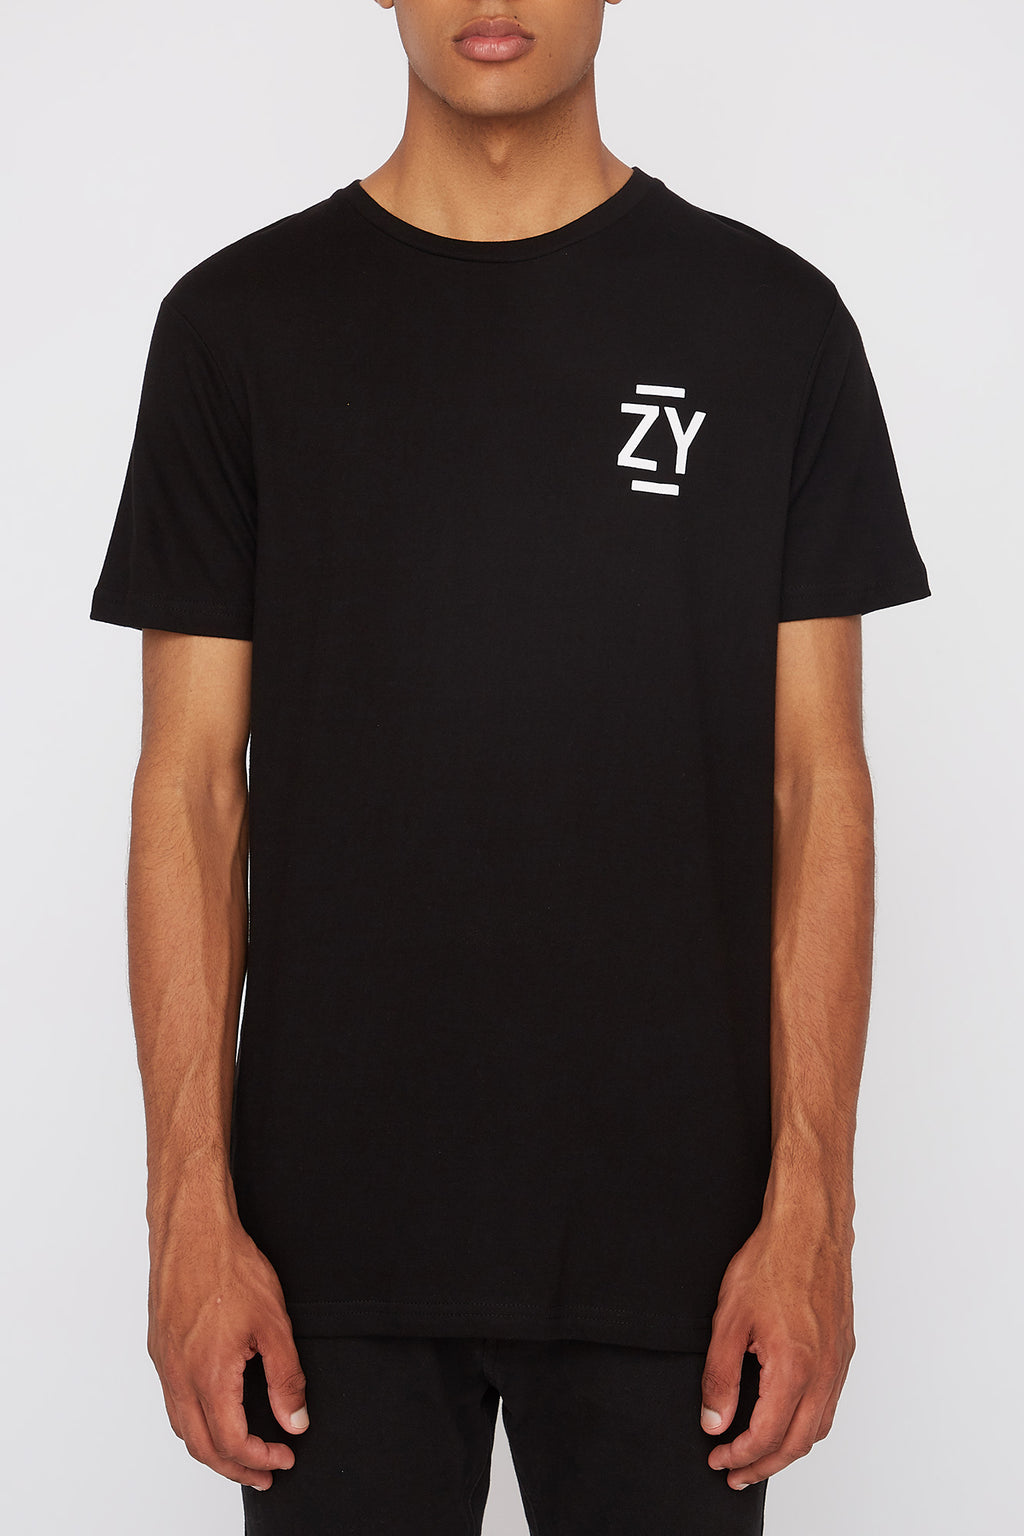 Zoo York Mens NYC Crew T-Shirt